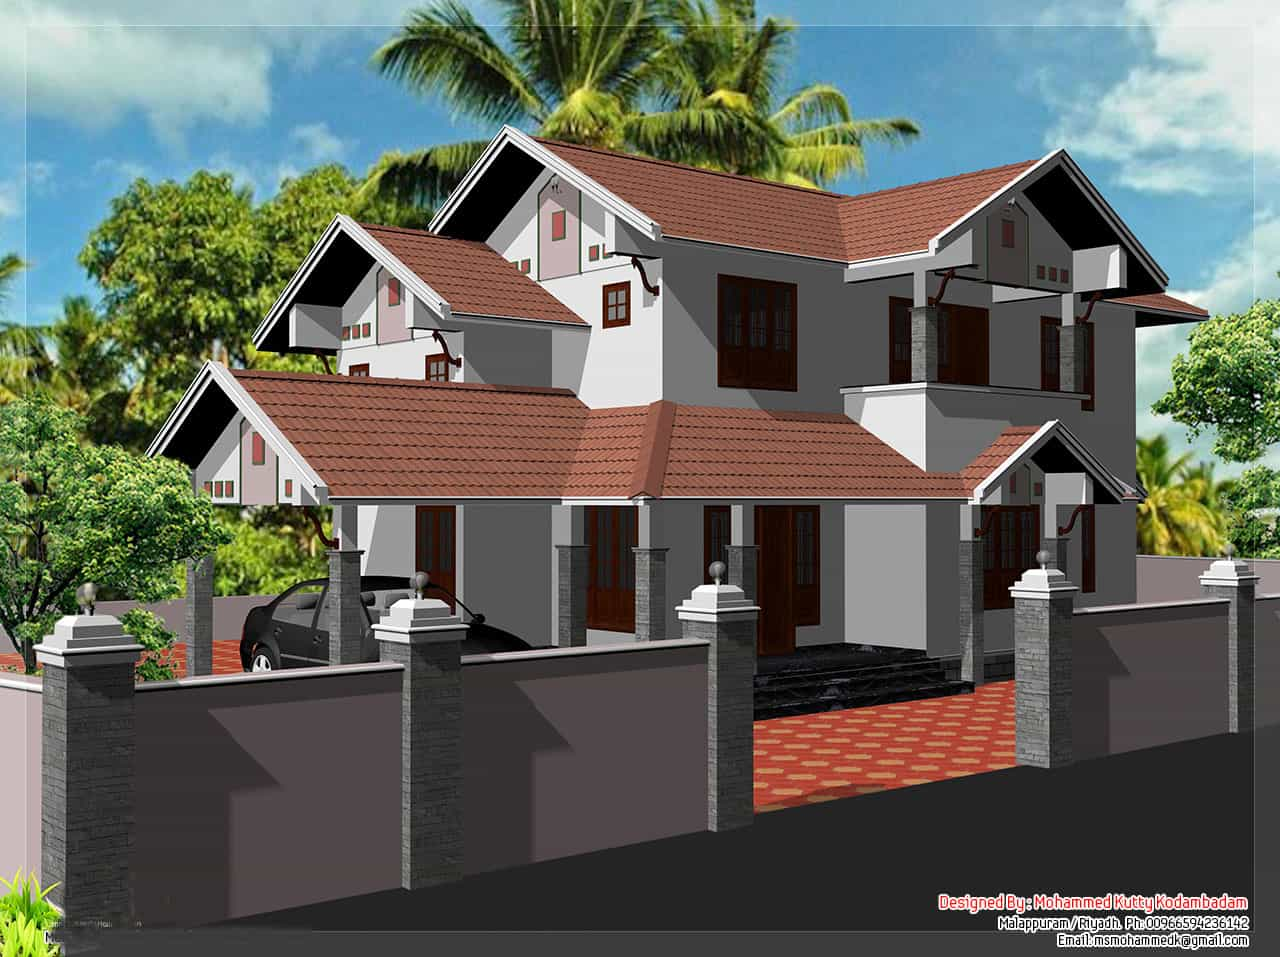 100 kerala house design below 1000 square feet 100 small. 100    2000 Sq Ft Bungalow Floor Plans     Bungalow Designs 1000